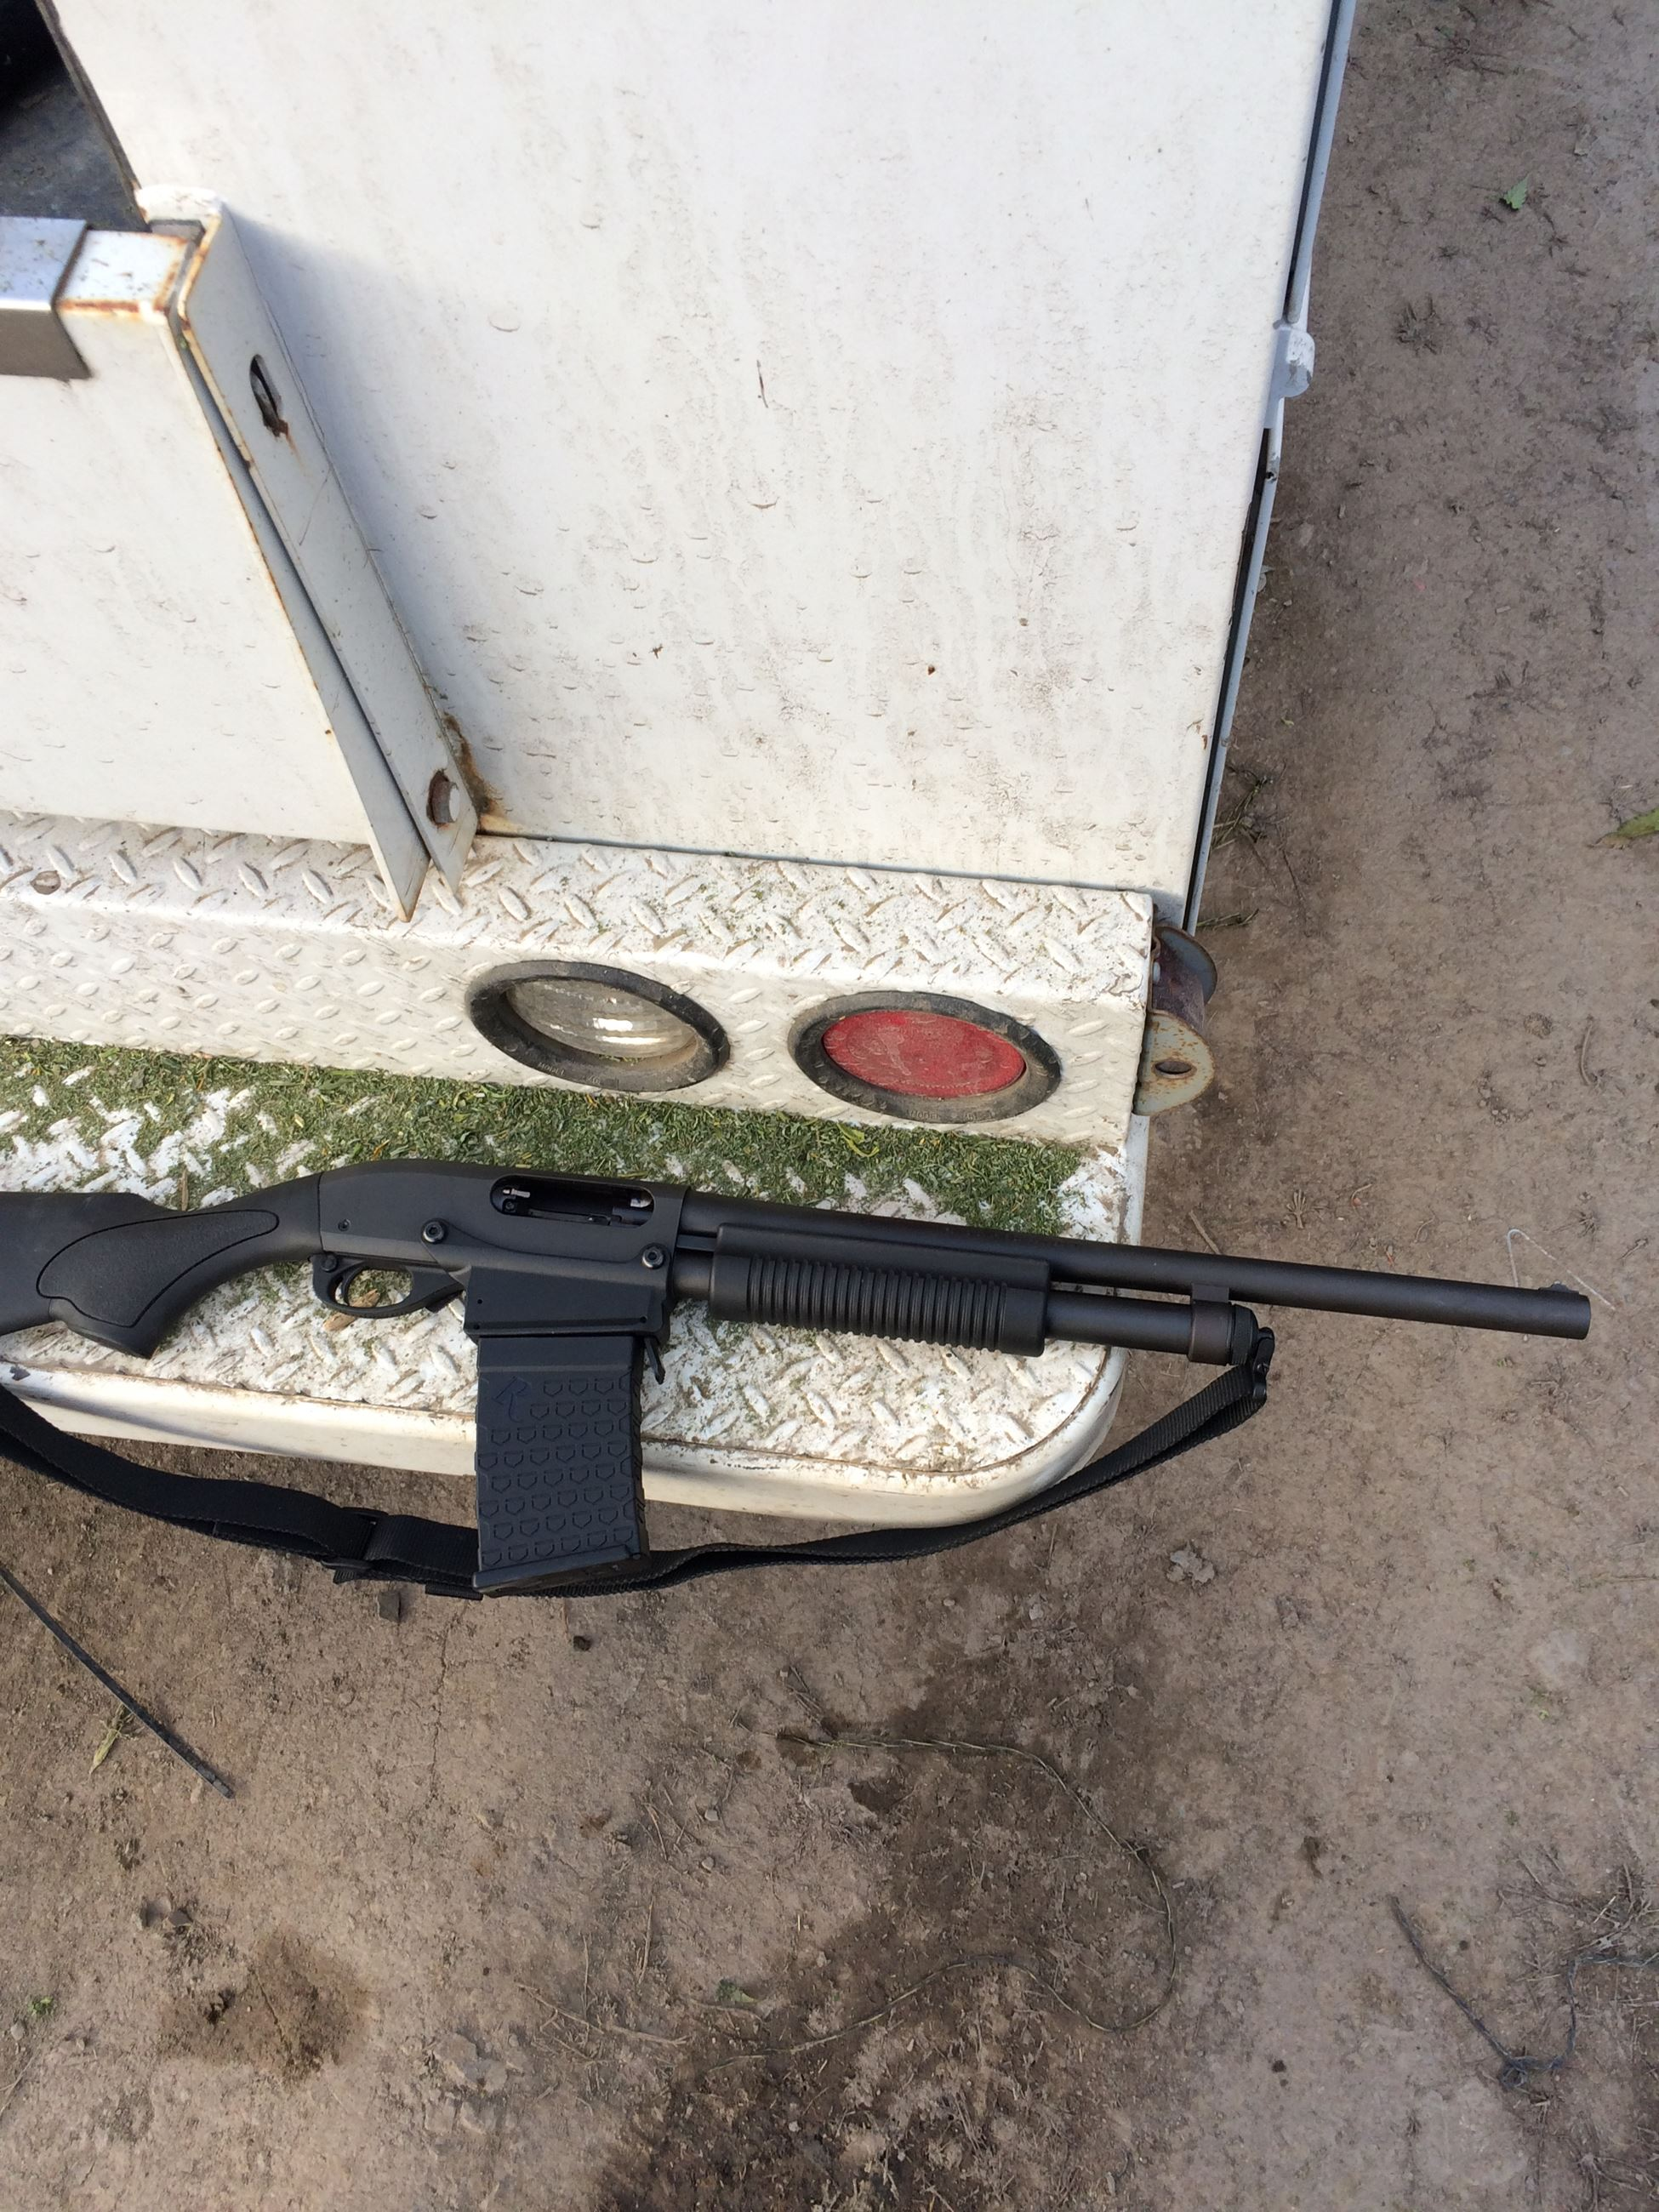 Firearm and magazine seized during search warrant.